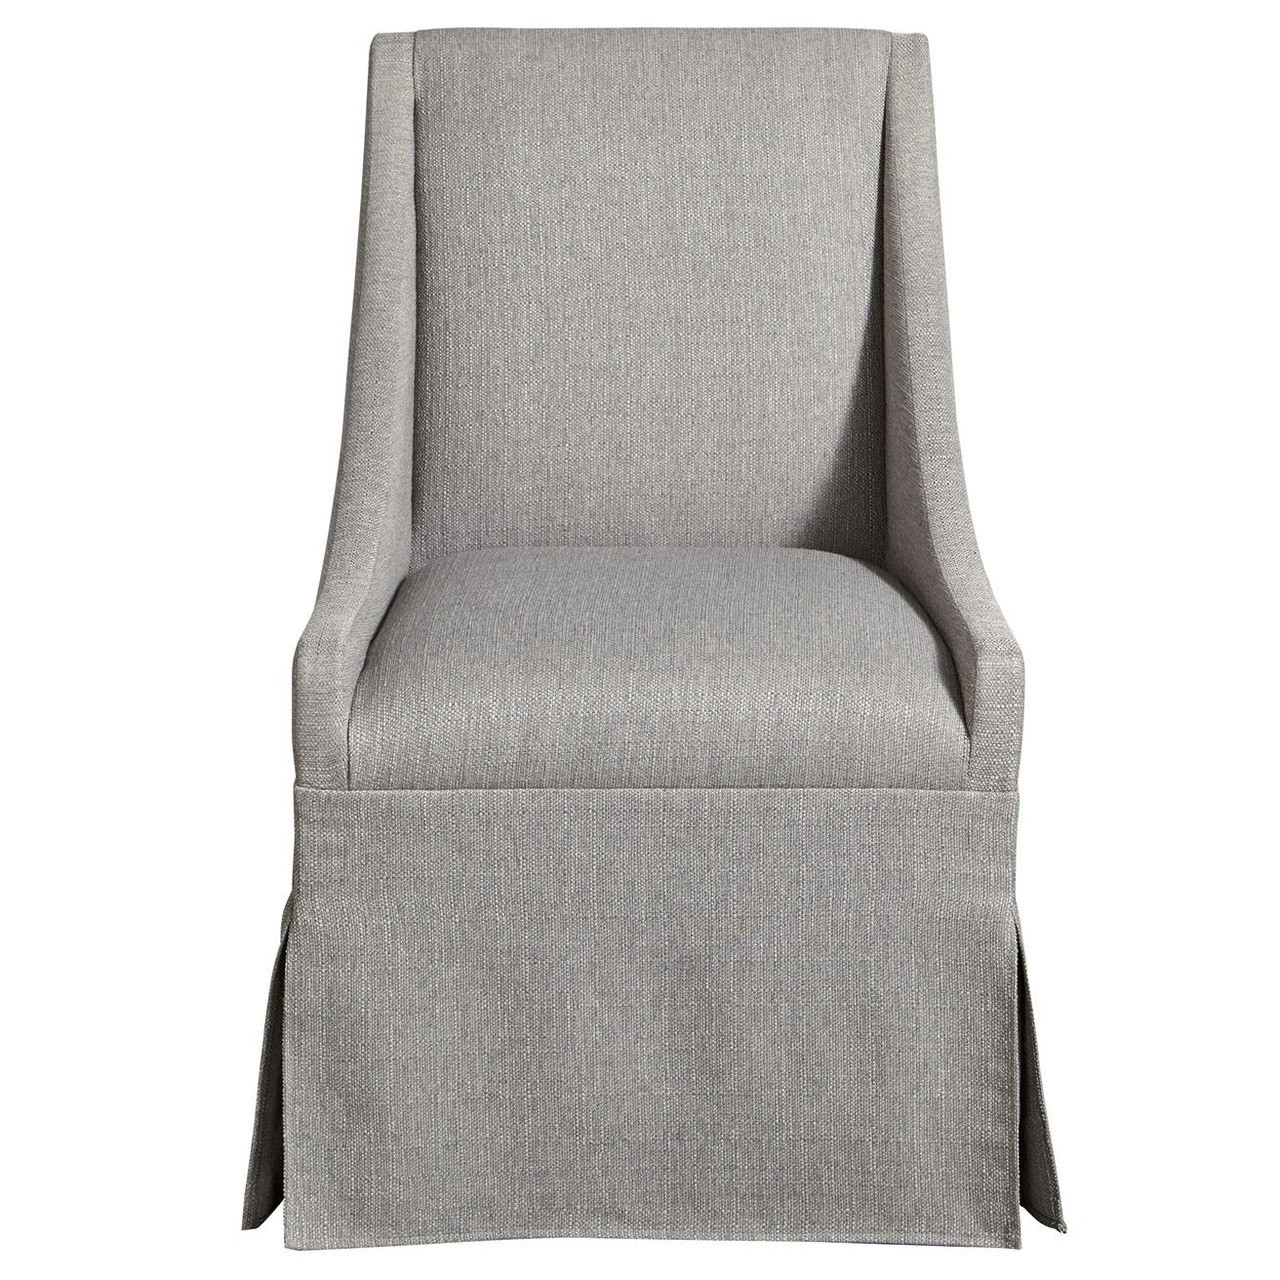 gray upholstered dining chairs big and tall townsend modern grey skirted chair zin home